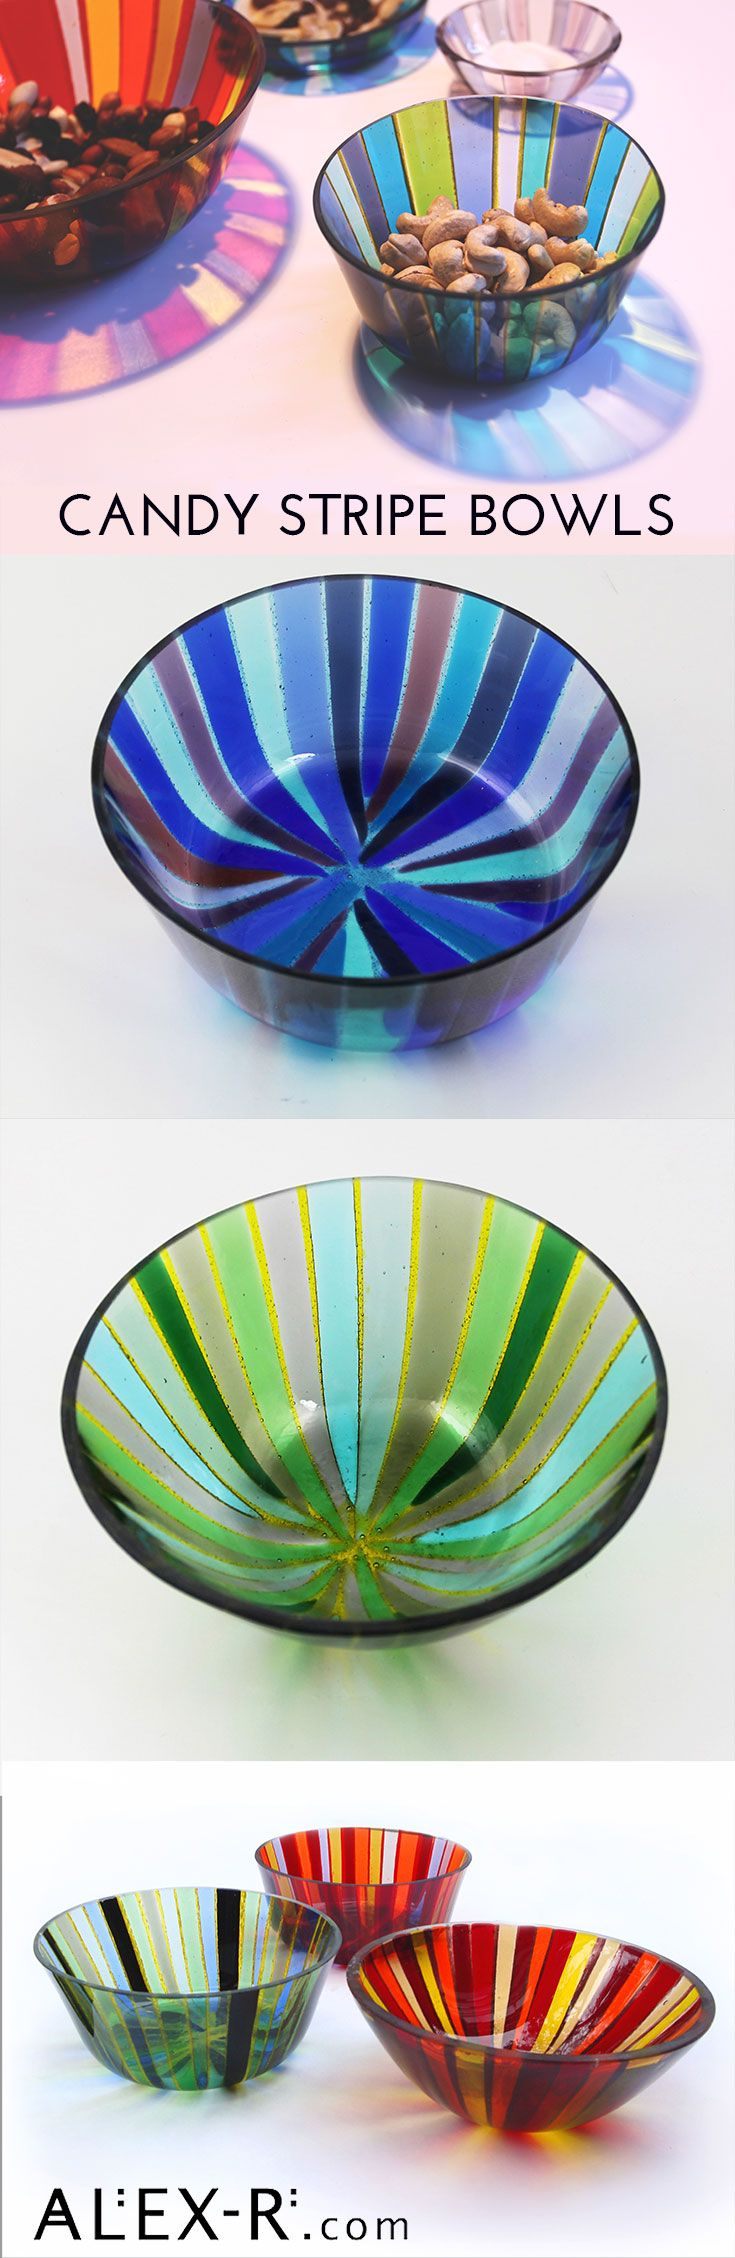 The Candy Stripe bowls make a striking impression with their bright colours and organic shapes. #stripes #contemporary www.alex-r.com